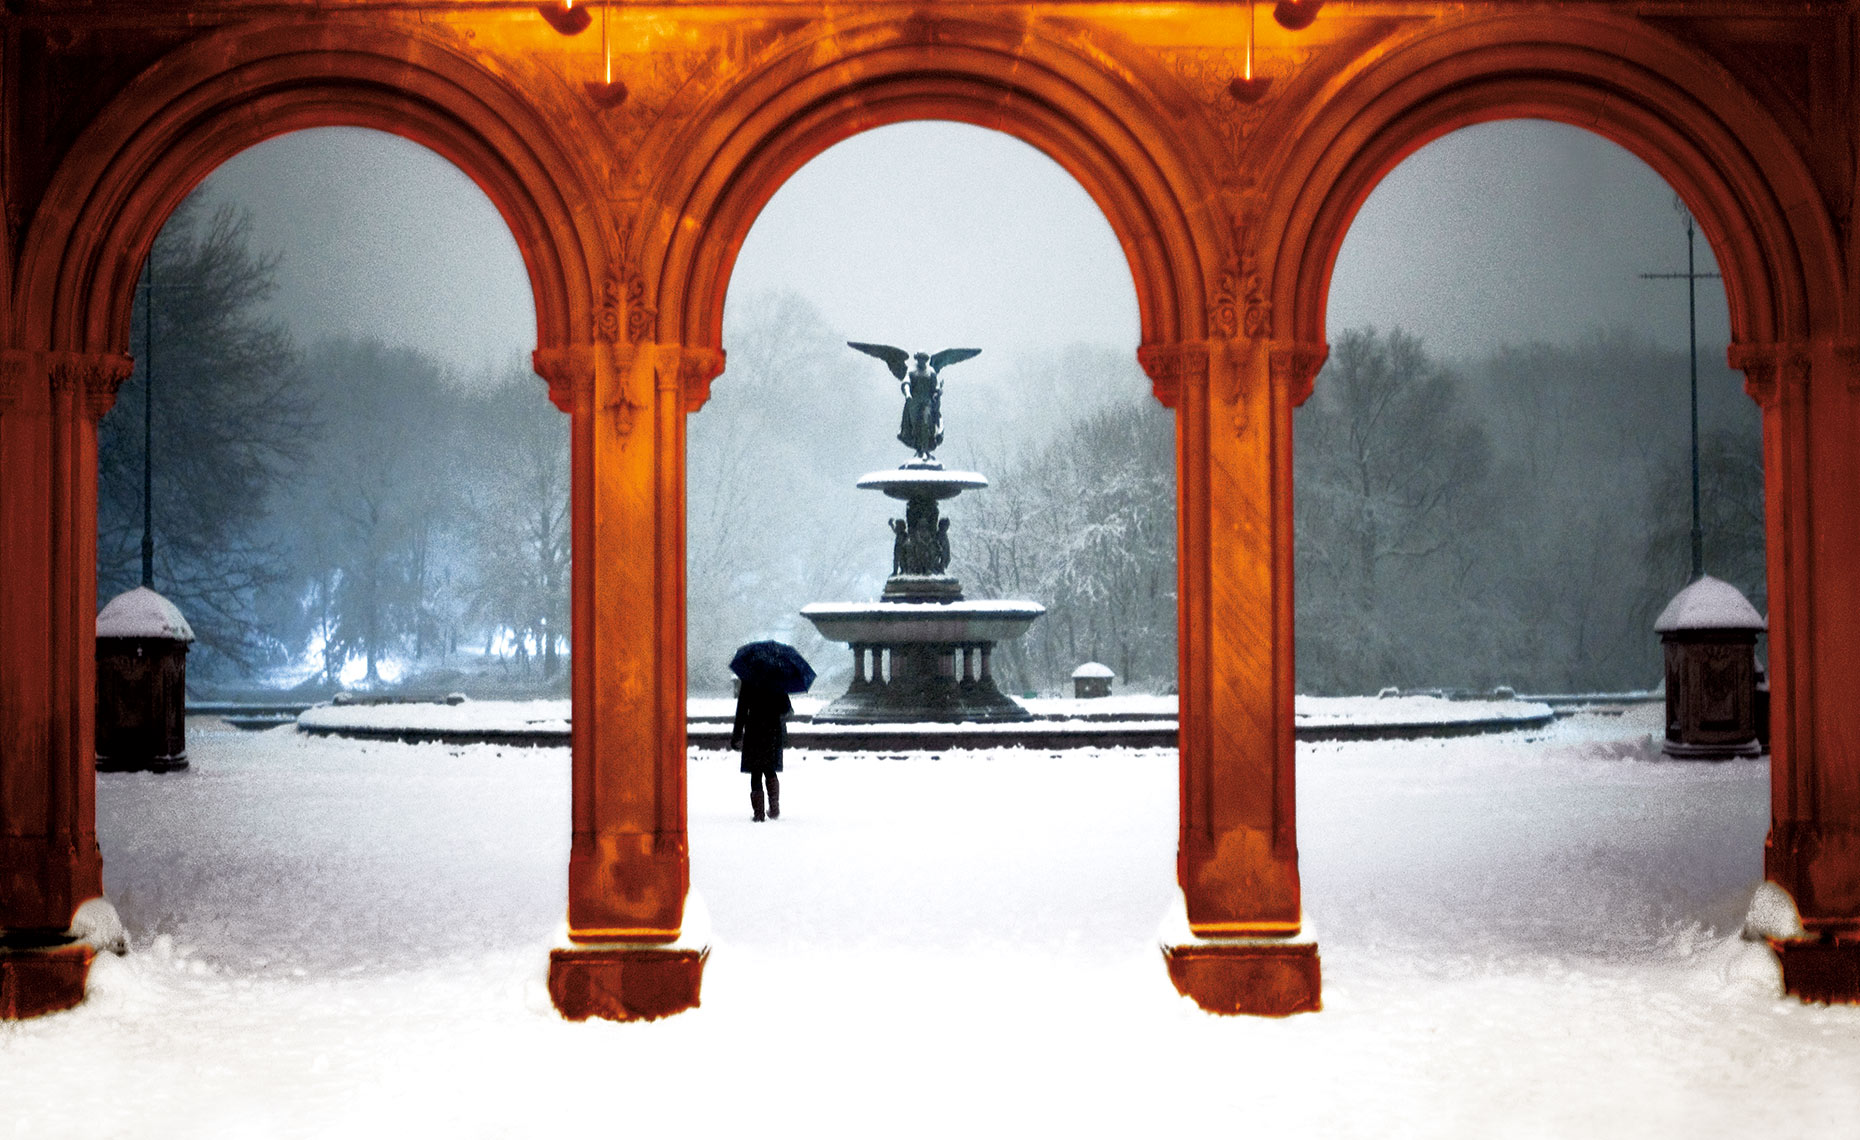 Bethseda Fountain, Central Park In WInter, New York City